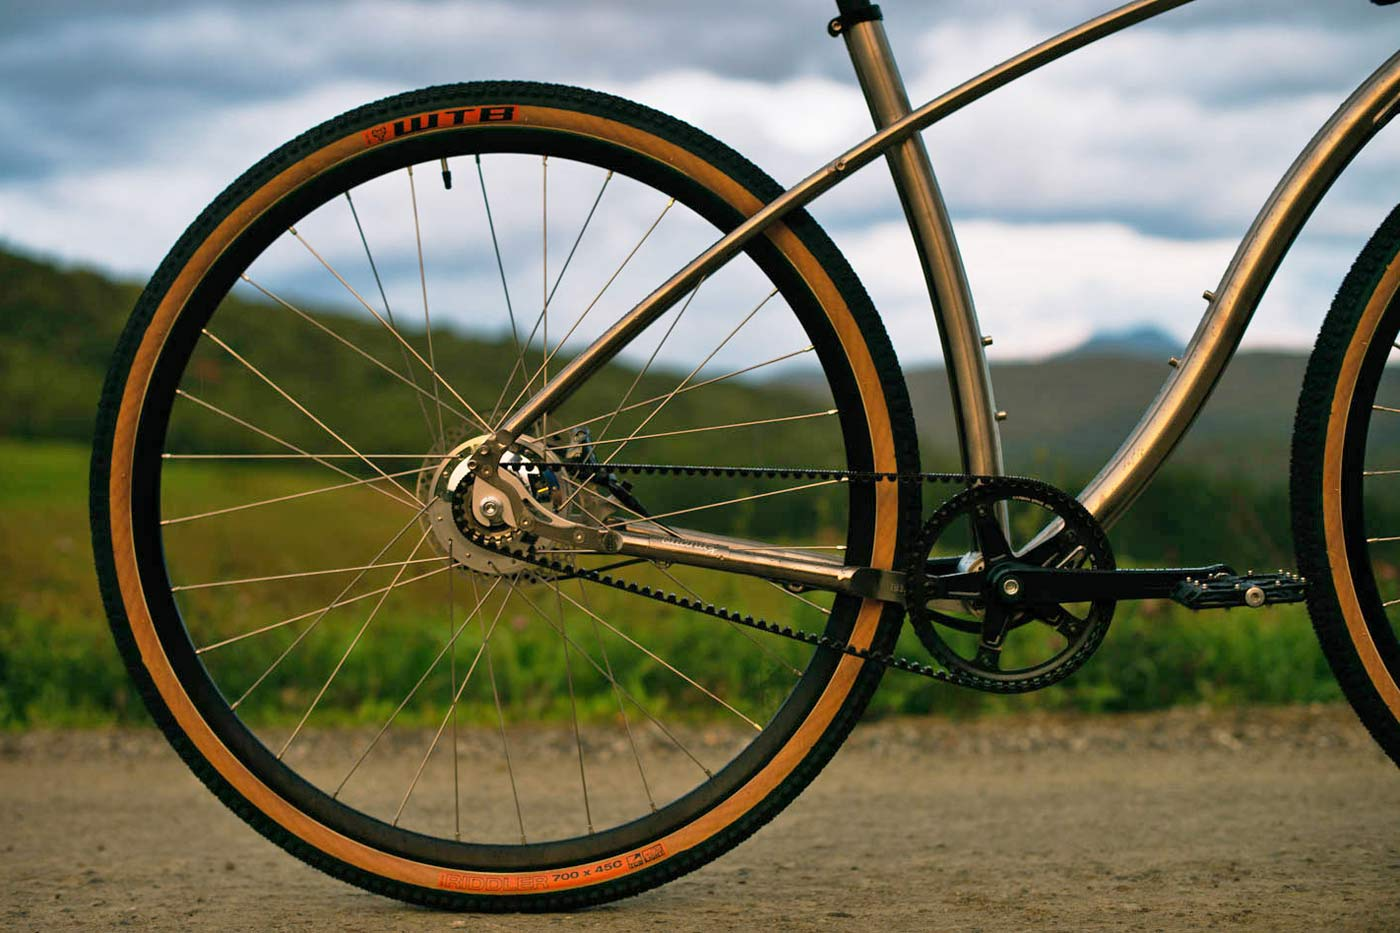 Budnitz-0-G_Zero-G_limited-edition-titanium-ti-gravel-road-bike_studio-complete Gates belt drive